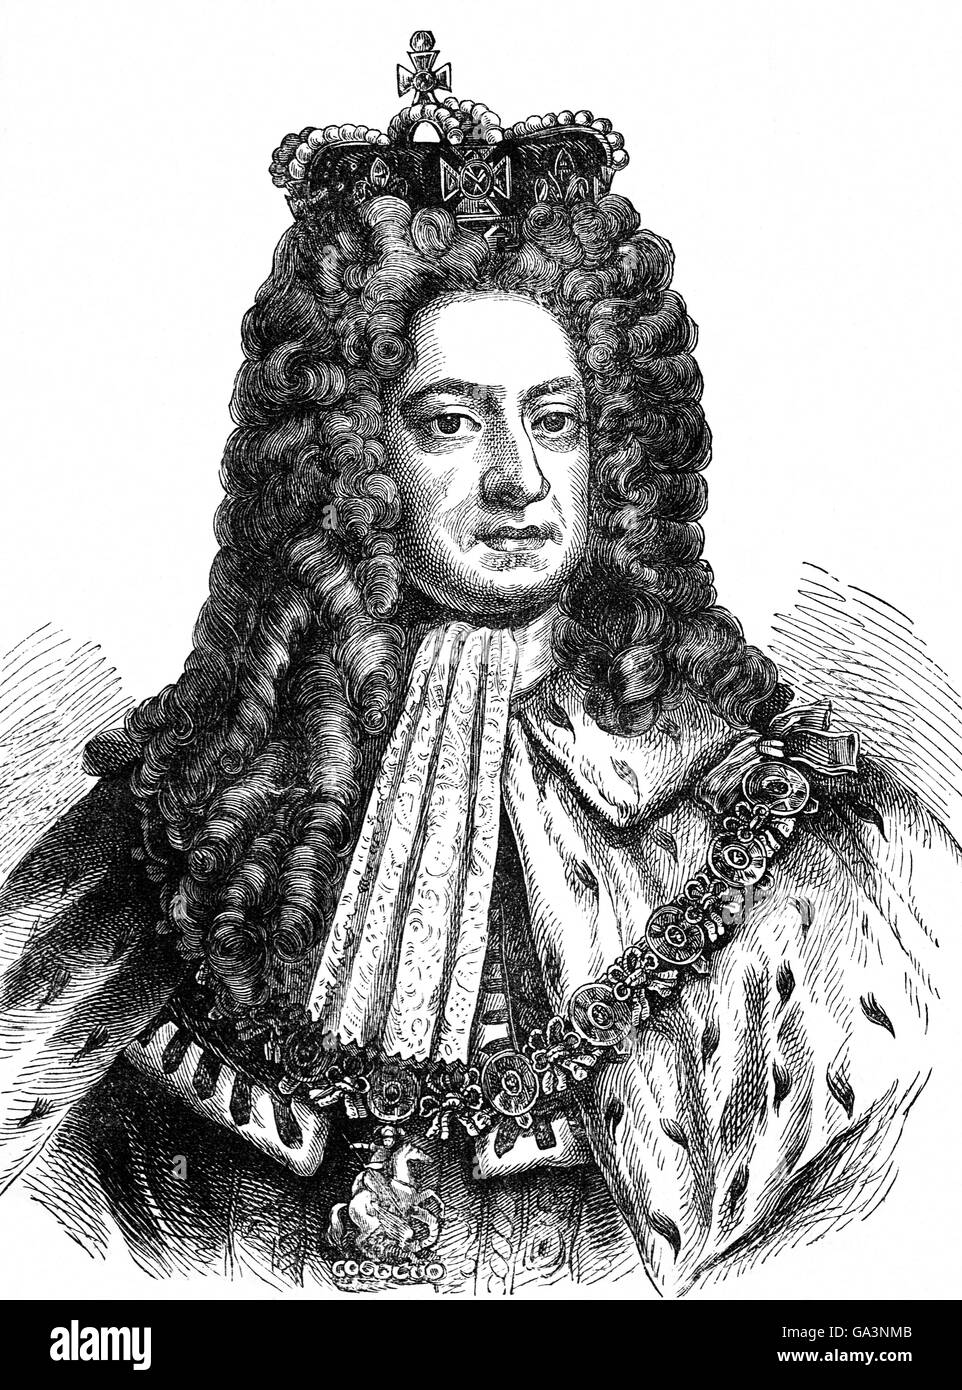 George I (1660 – 1727) was selected as King of Great Britain and Ireland from 1st August 1714 until his death, although - Stock Image